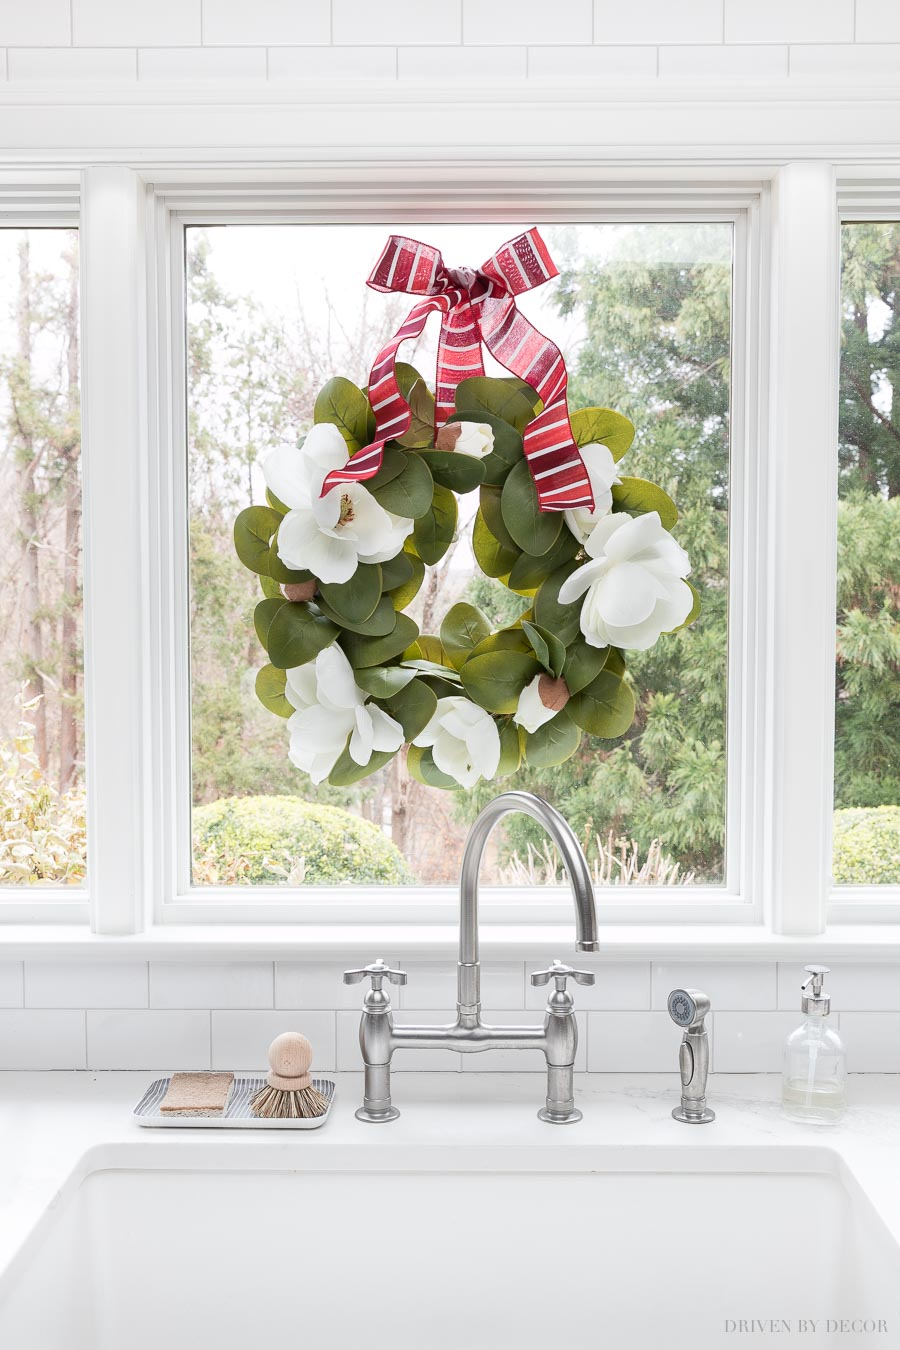 This magnolia wreath is perfect for transitioning from fall into the holiday season!